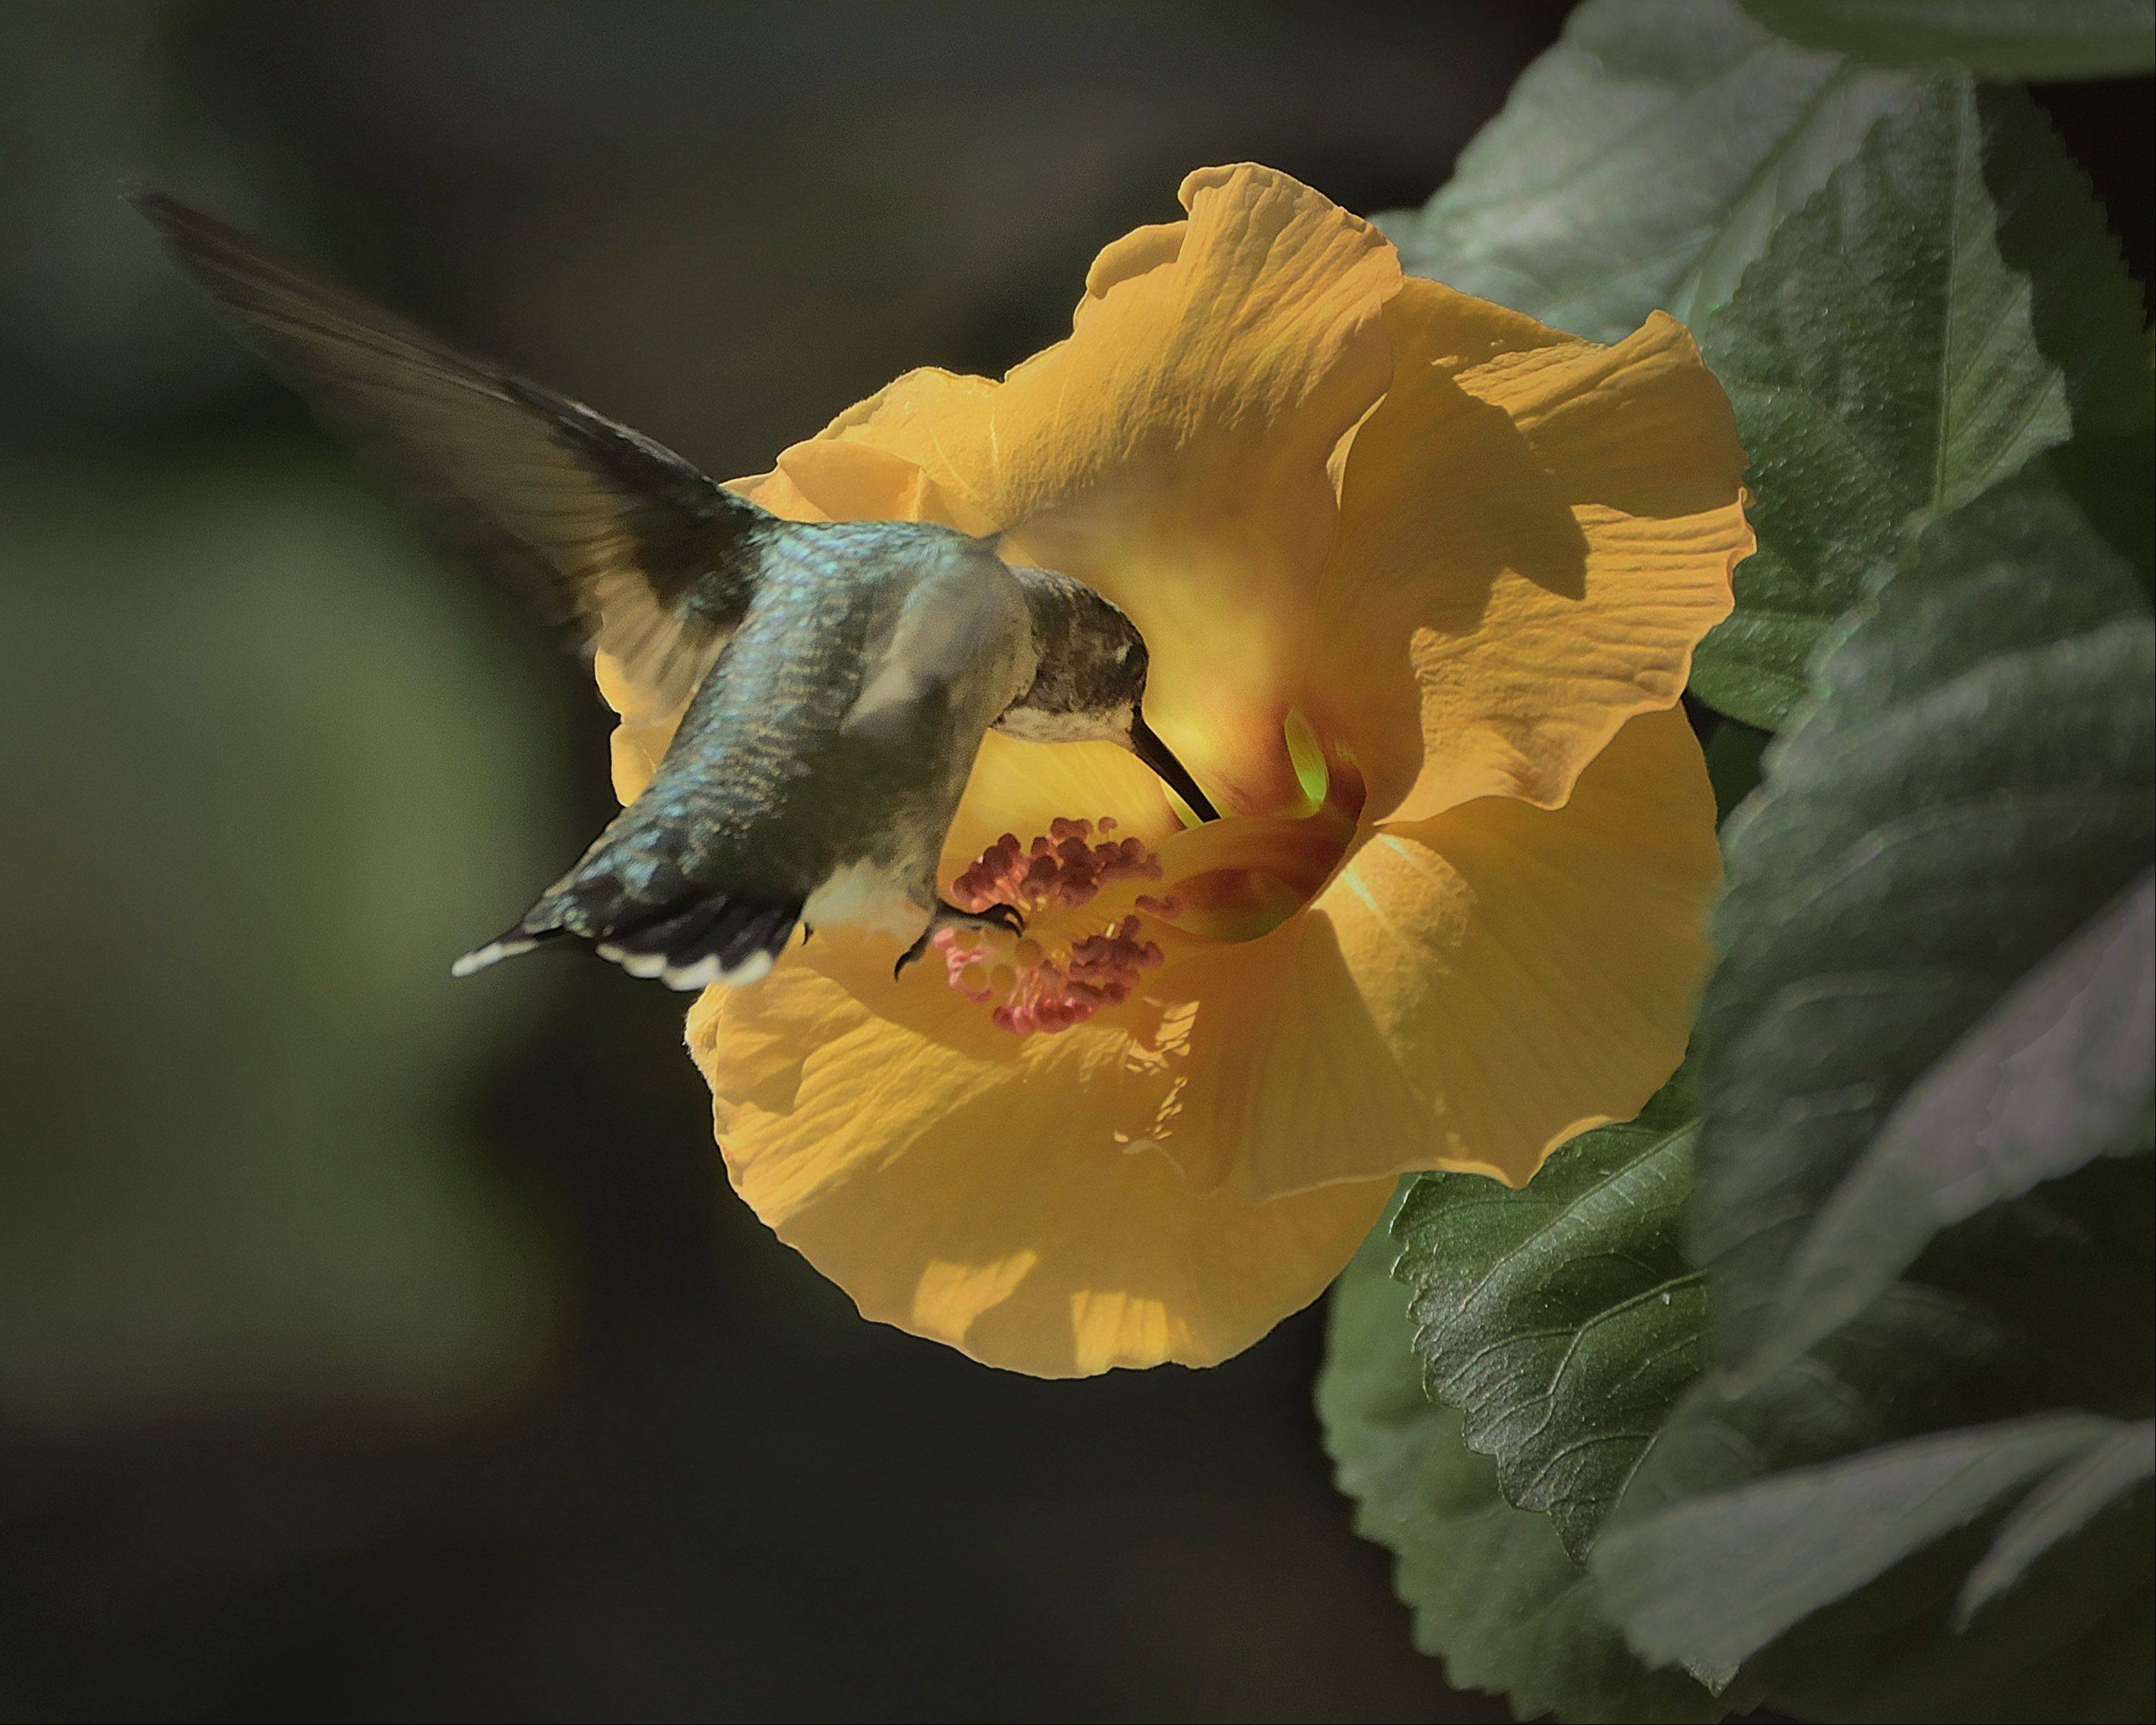 Our Hibiscus held off on blooming until last week when it produced seven blooms on that particular day. Just as I was getting ready to go out and take a few shots of the flowers this hummingbird showed up and touched upon 5 of the flowers.